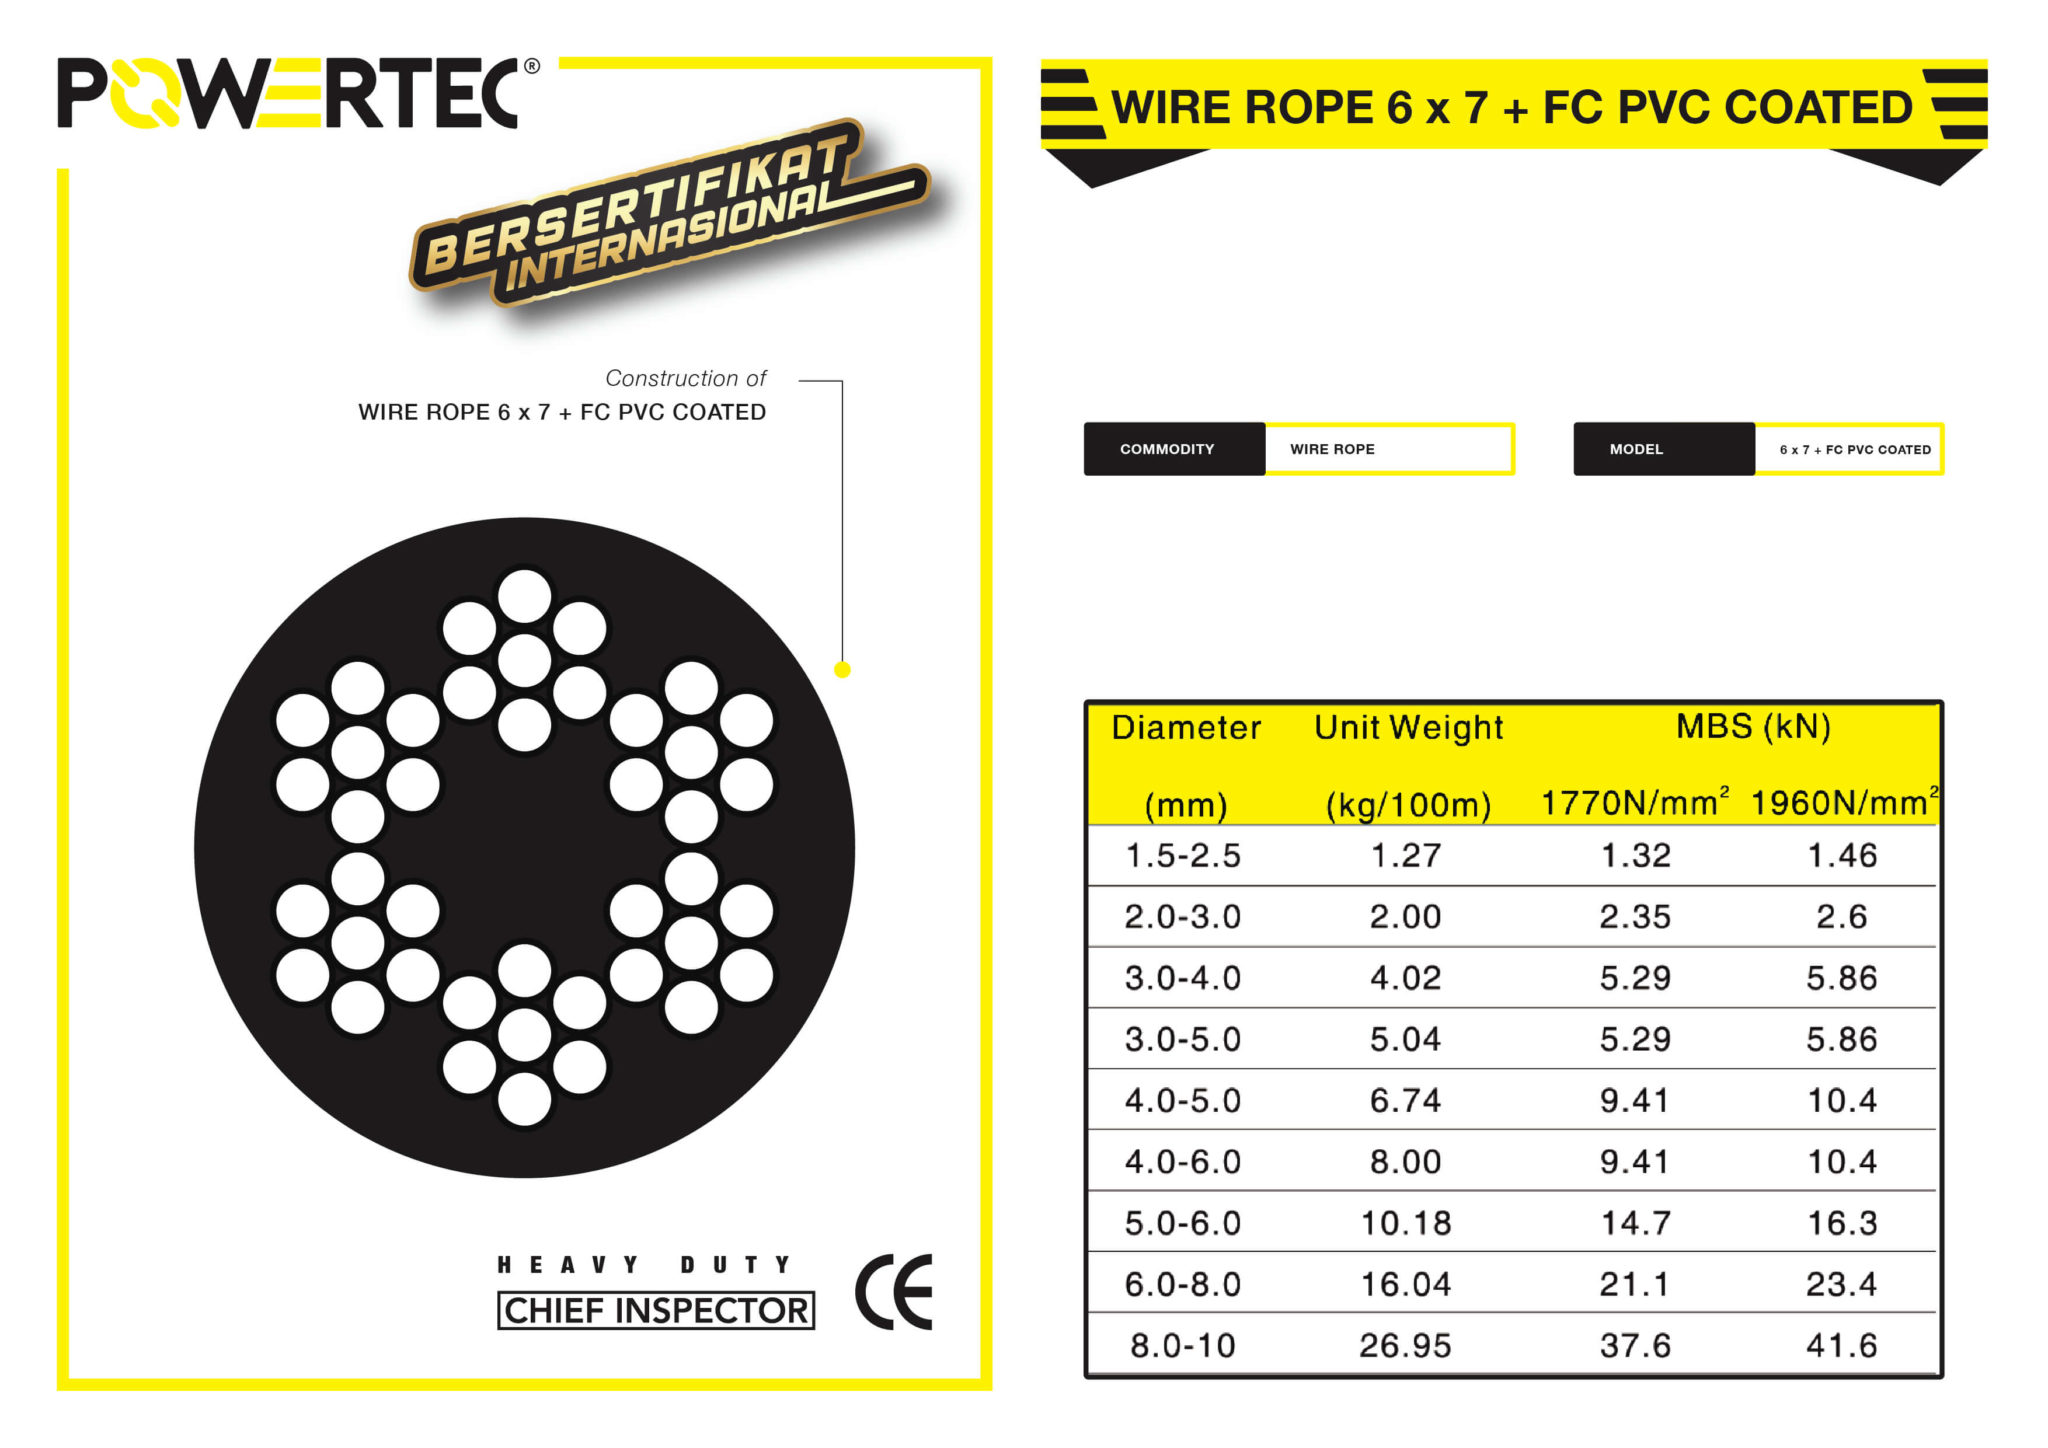 POWERTEC WIRE ROPE 6 x 7 + FC PVC COATED BROCHURE